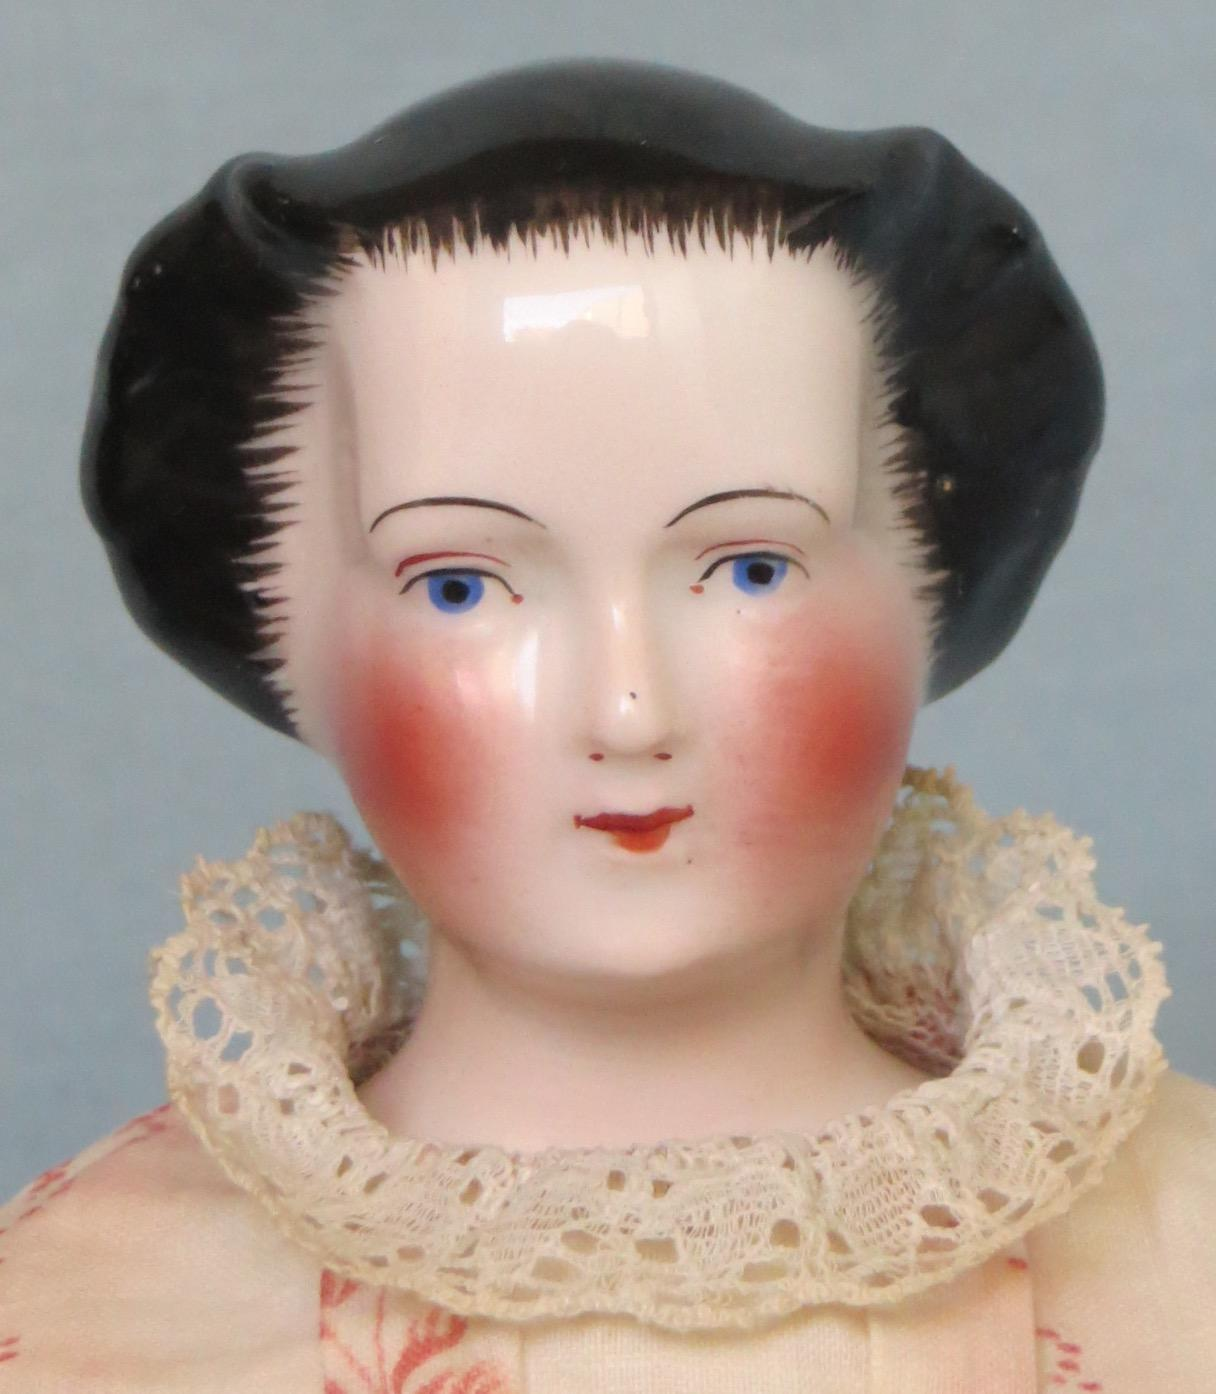 China Doll Pics, Artistic Collection